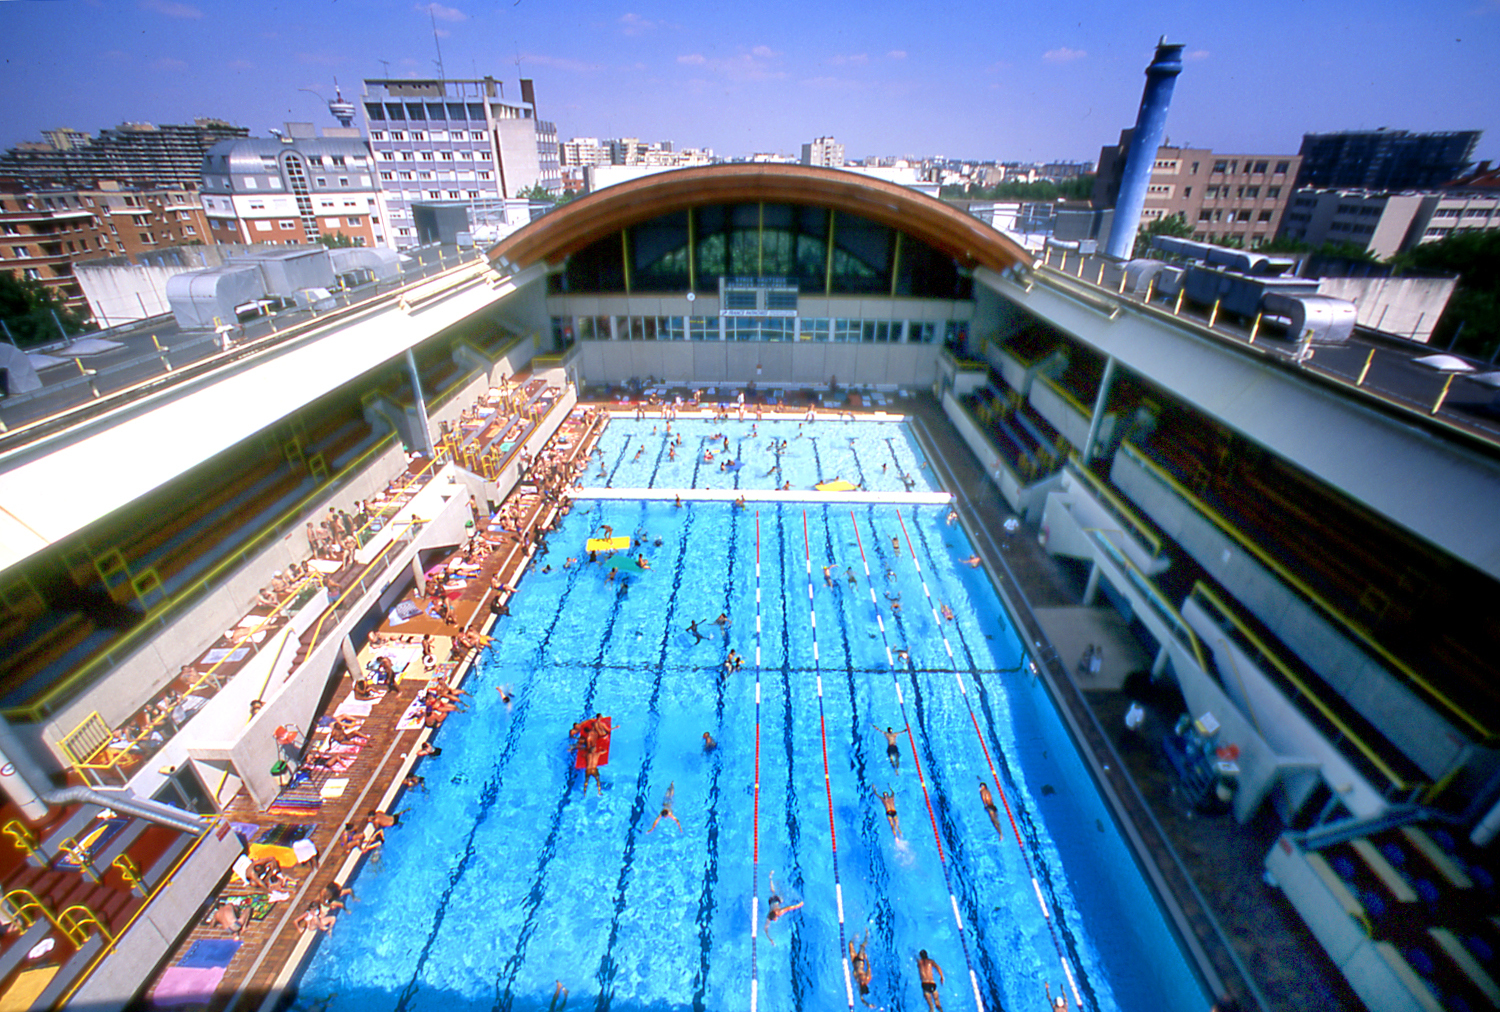 Piscines top 10 des piscines pour nager paris cet t for Spa avec piscine paris